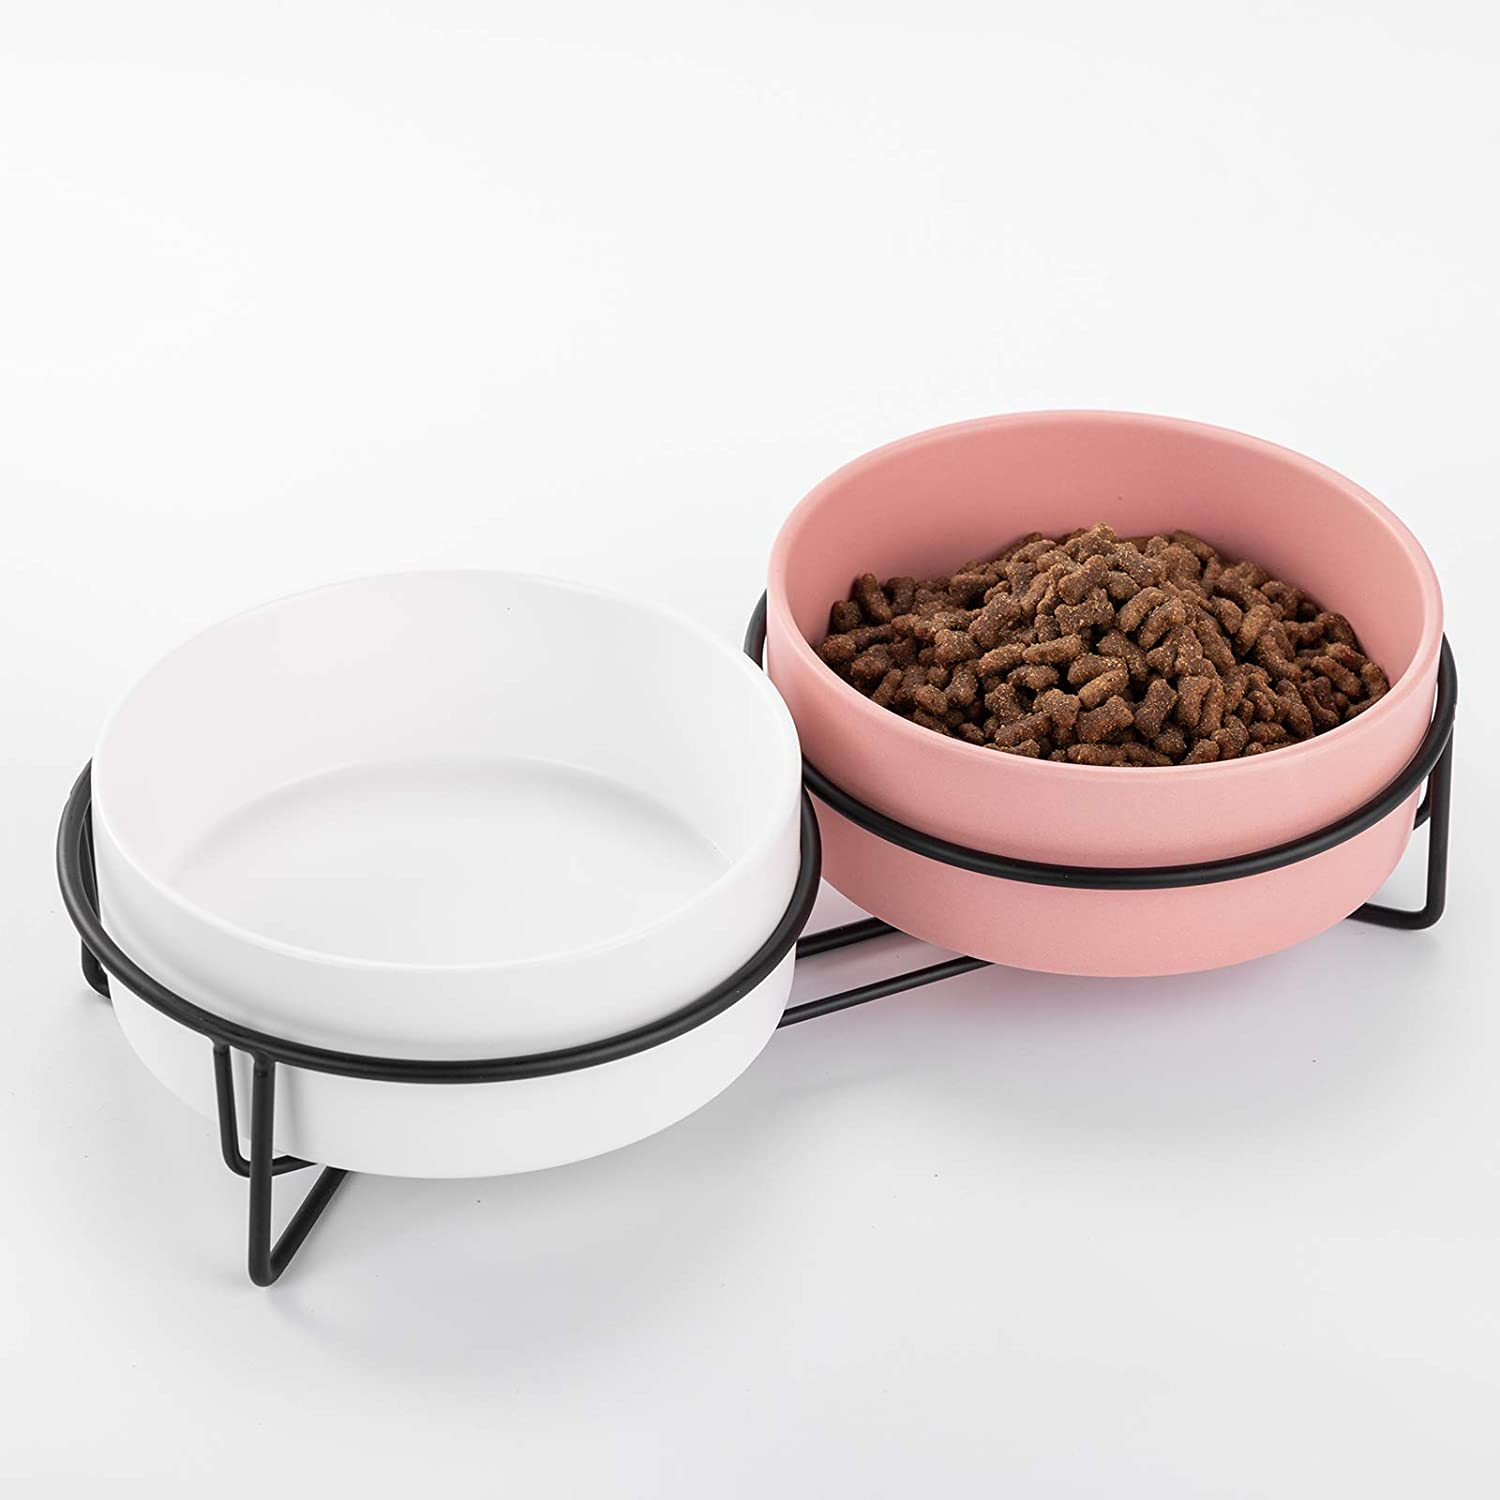 Ihoming Dog Bowl   Food Water Dish for Dogs and Cats, Ceramic Pet Bowl for Food & Water